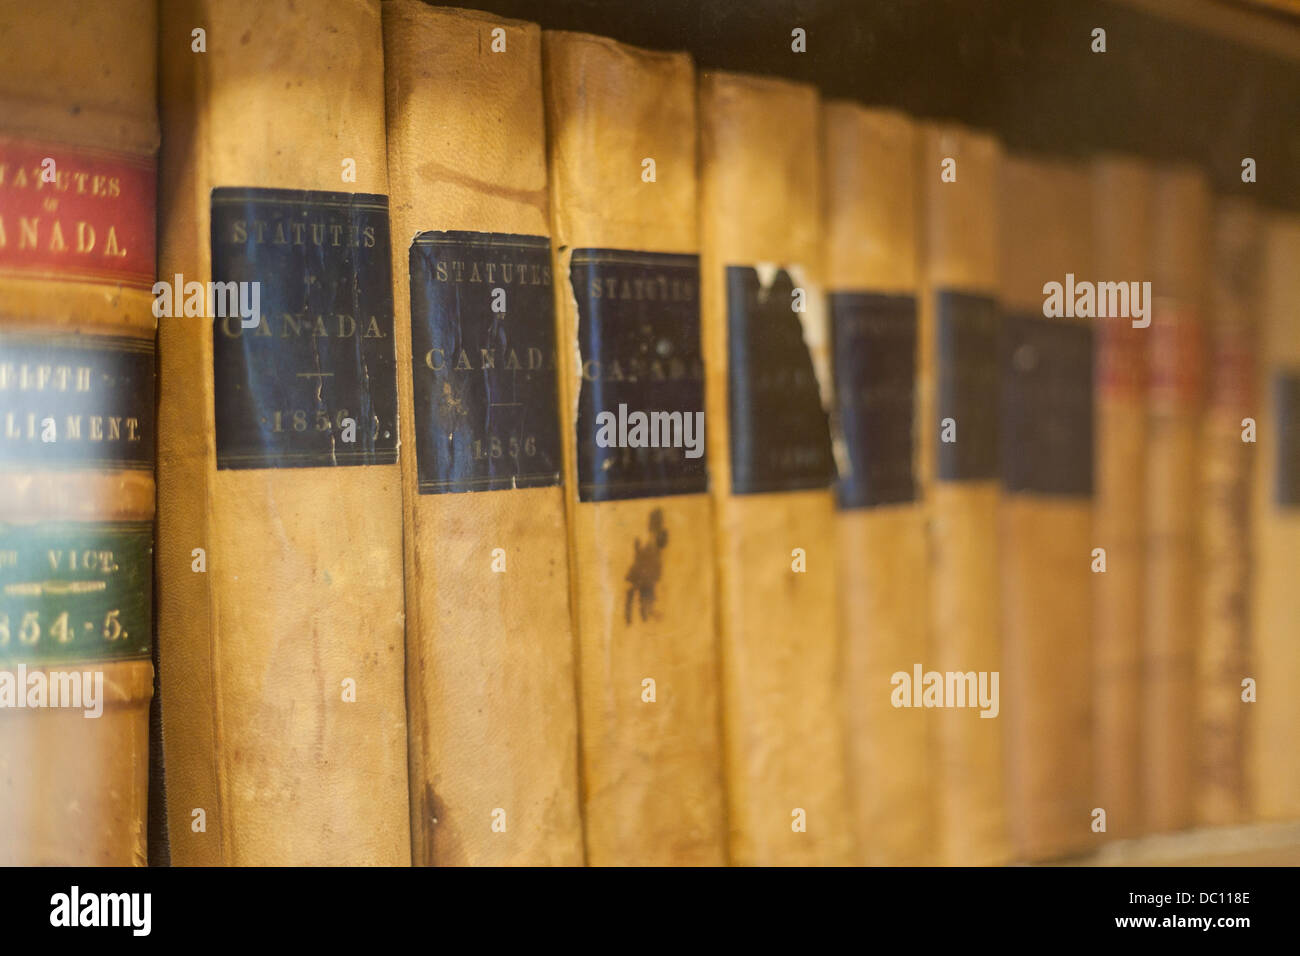 Old Statutes Of Canada Books From 1856 Law On A Dusty Bookshelf Pinheys Point Ottawa Ontario